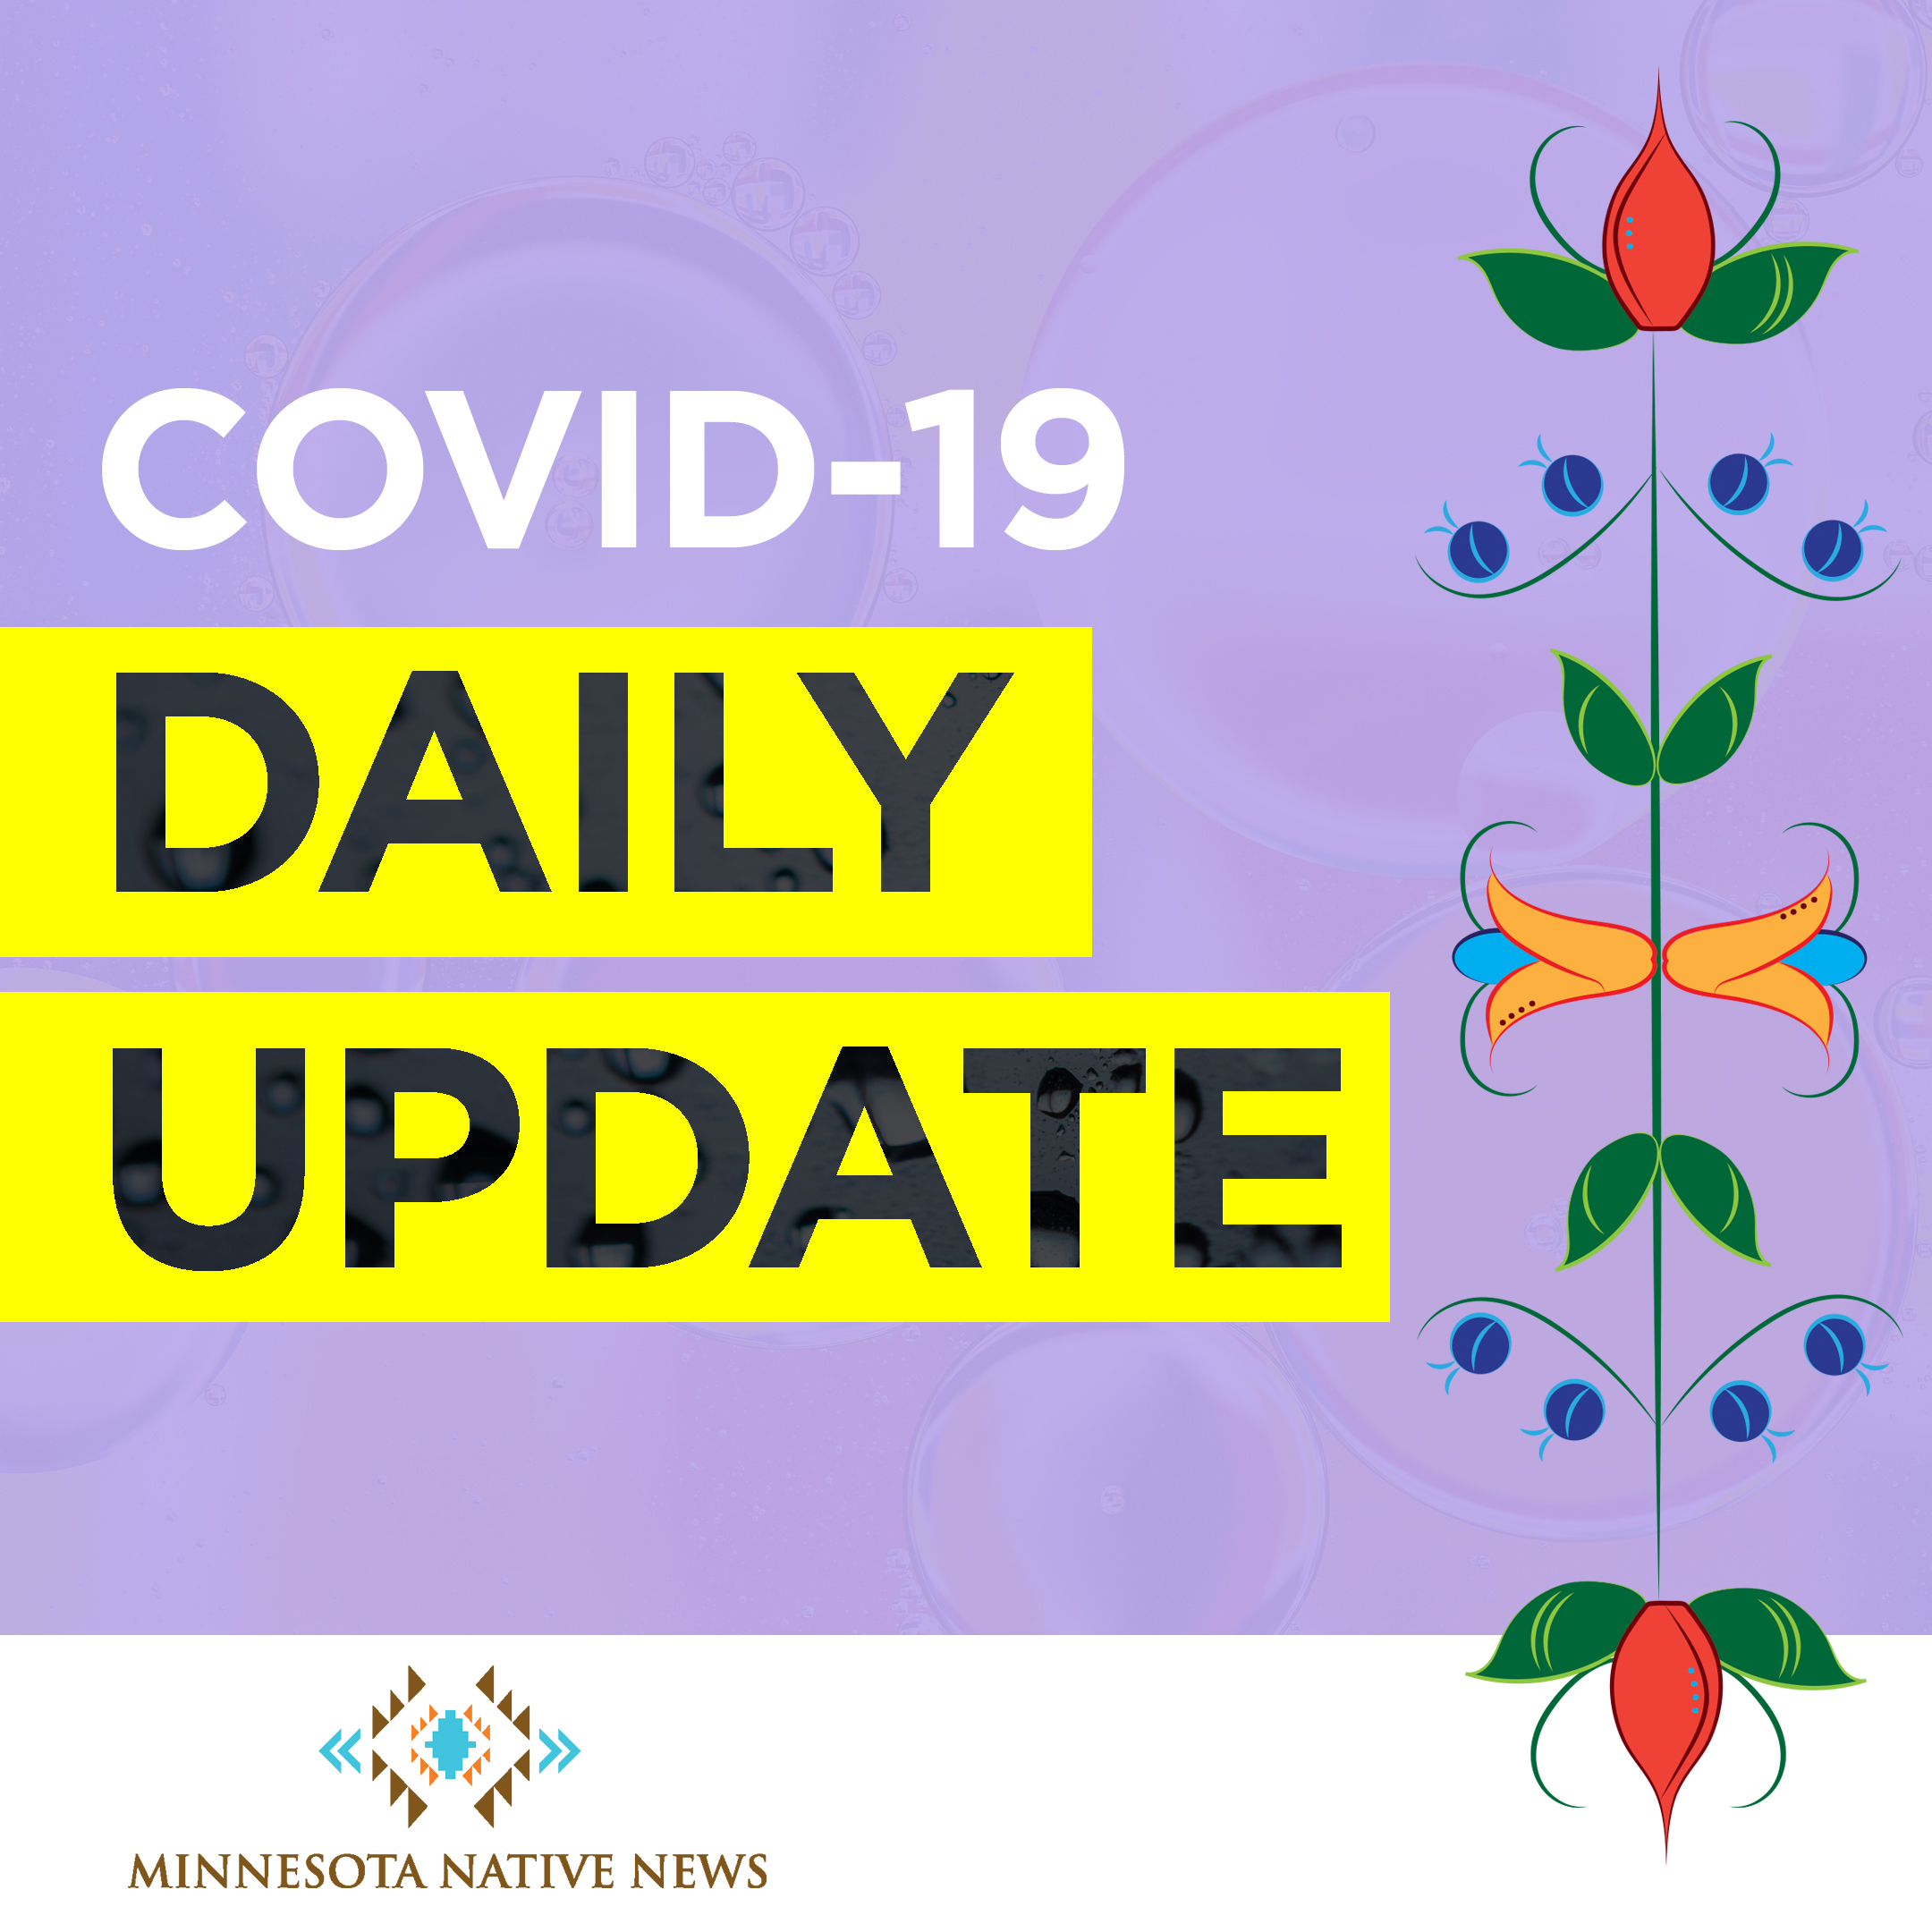 Gov. Walz Announces Expansion of State's COVID-19 Saliva Testing Capacity